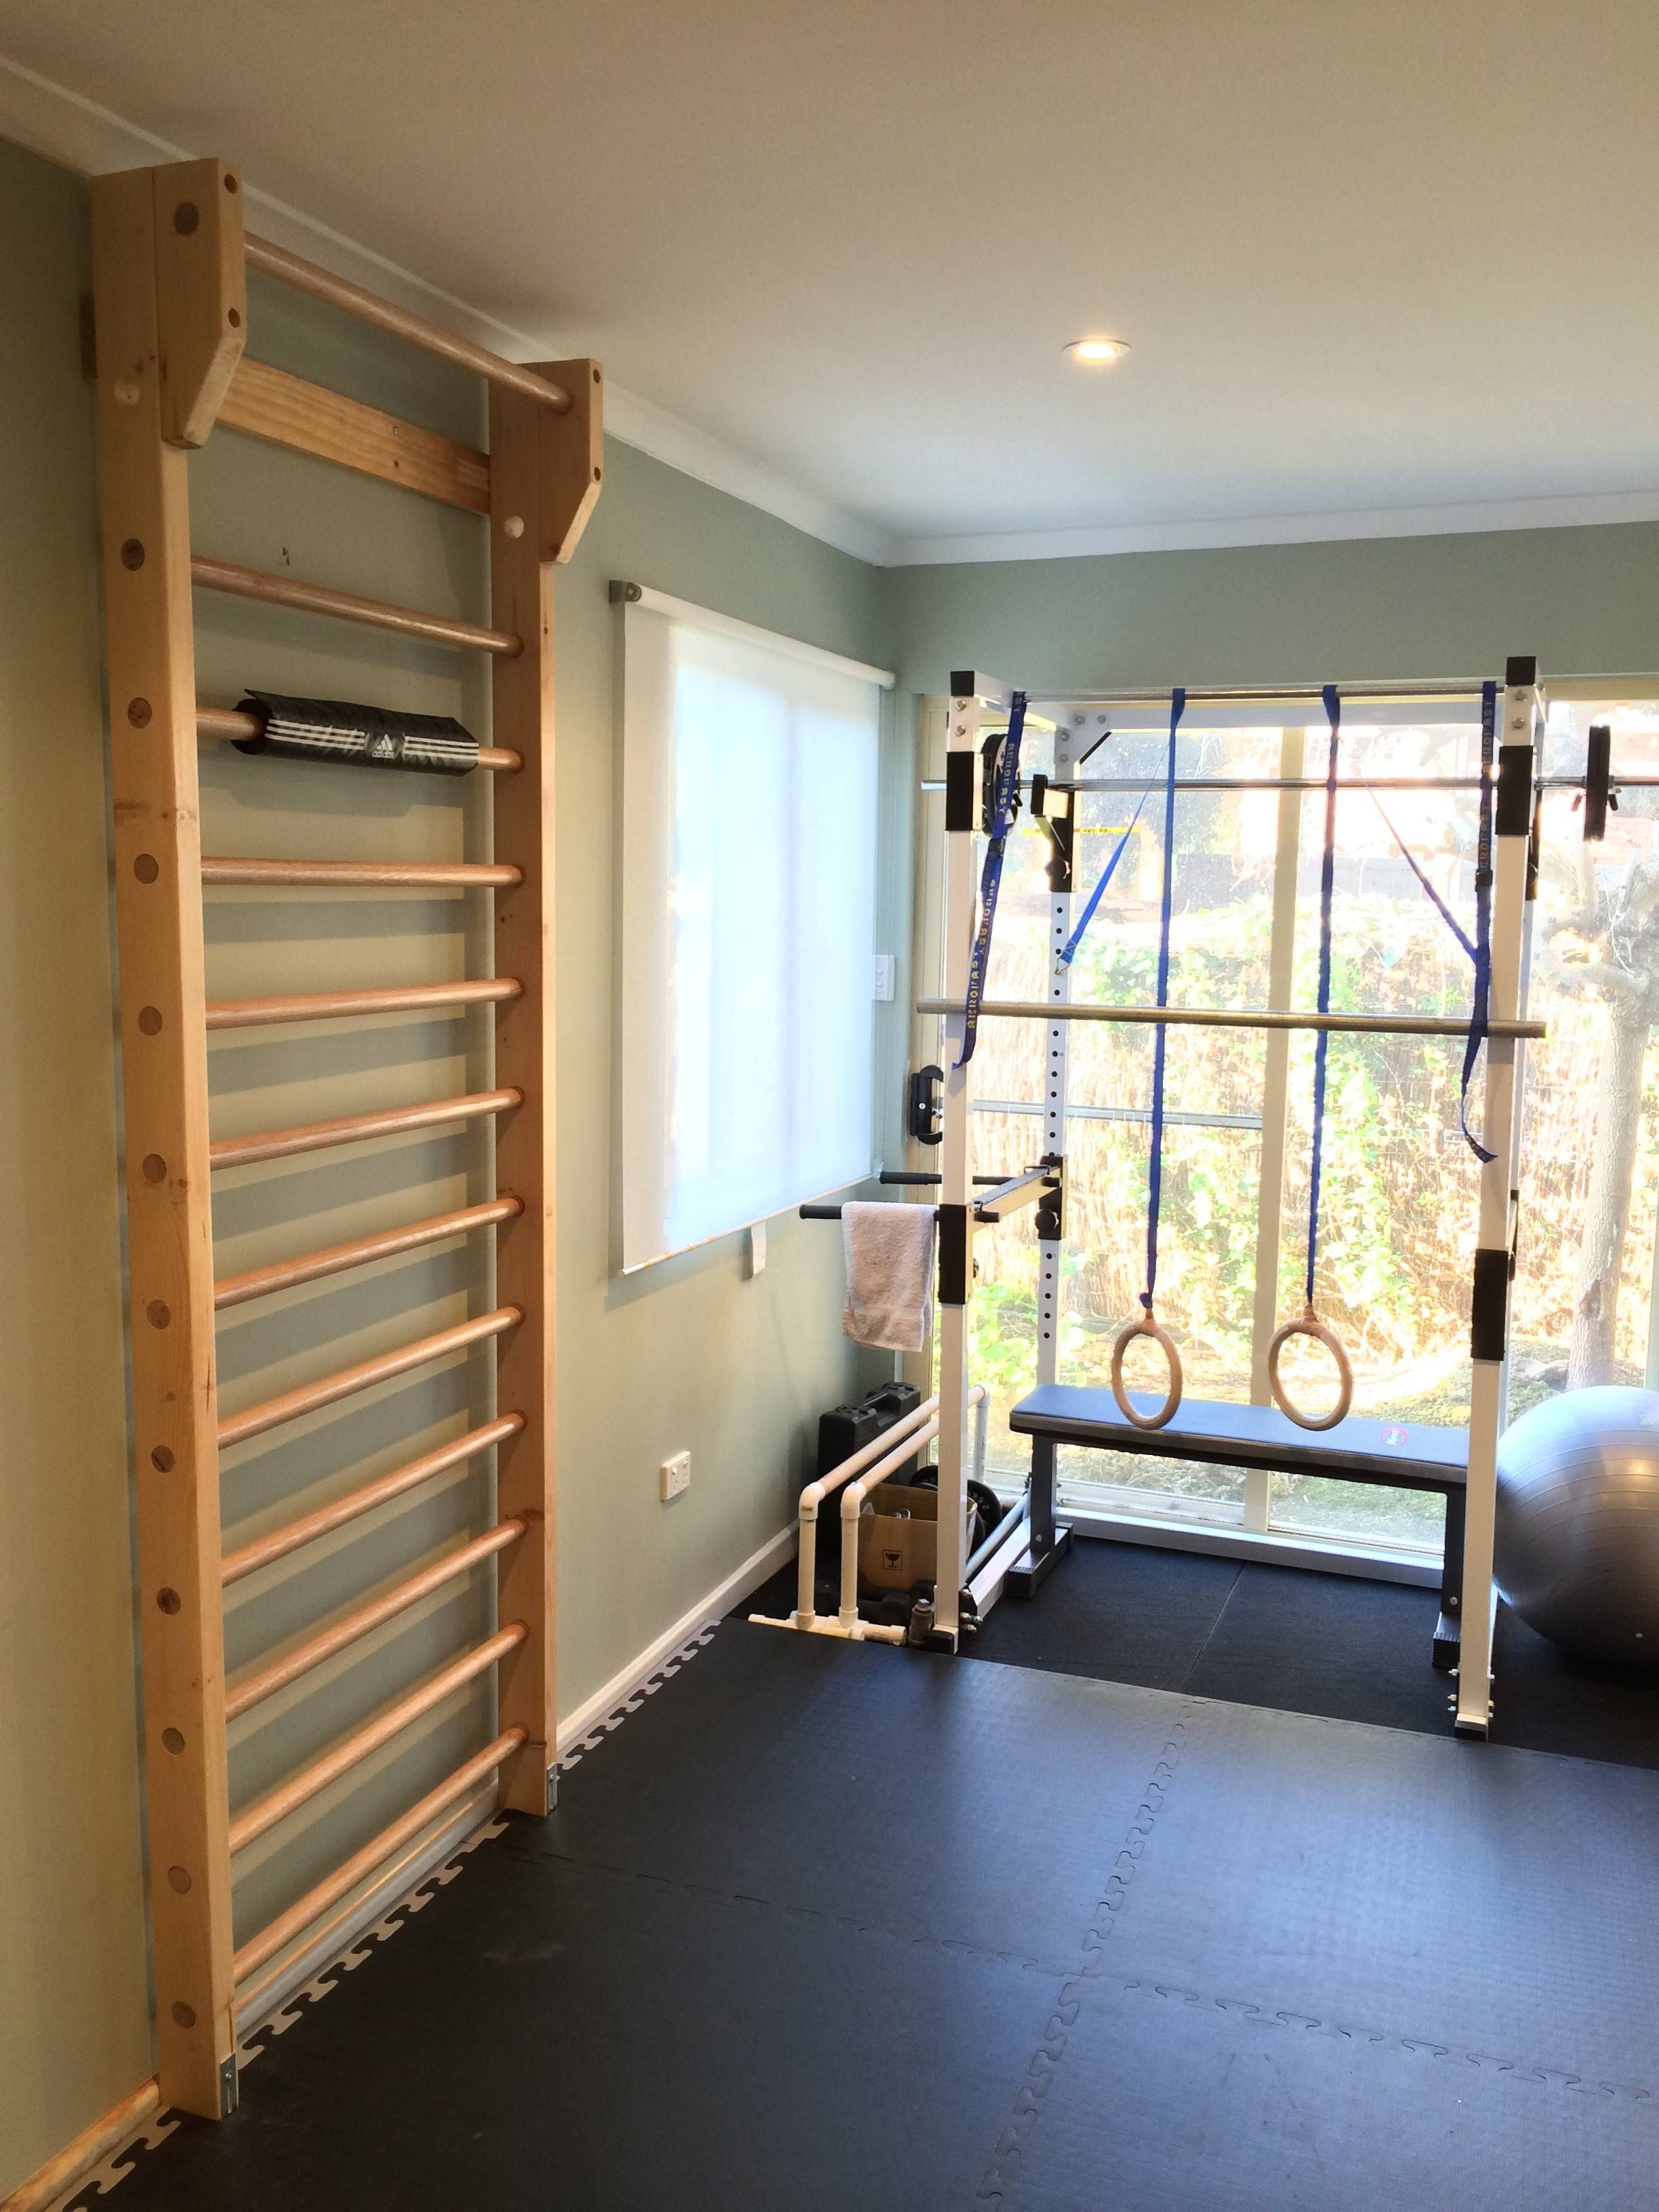 Bar2fit Wooden Wall Bars Stall Bars For Home Fitness And Exercising Homefitnessrooms Workout Room Home Diy Home Gym At Home Gym